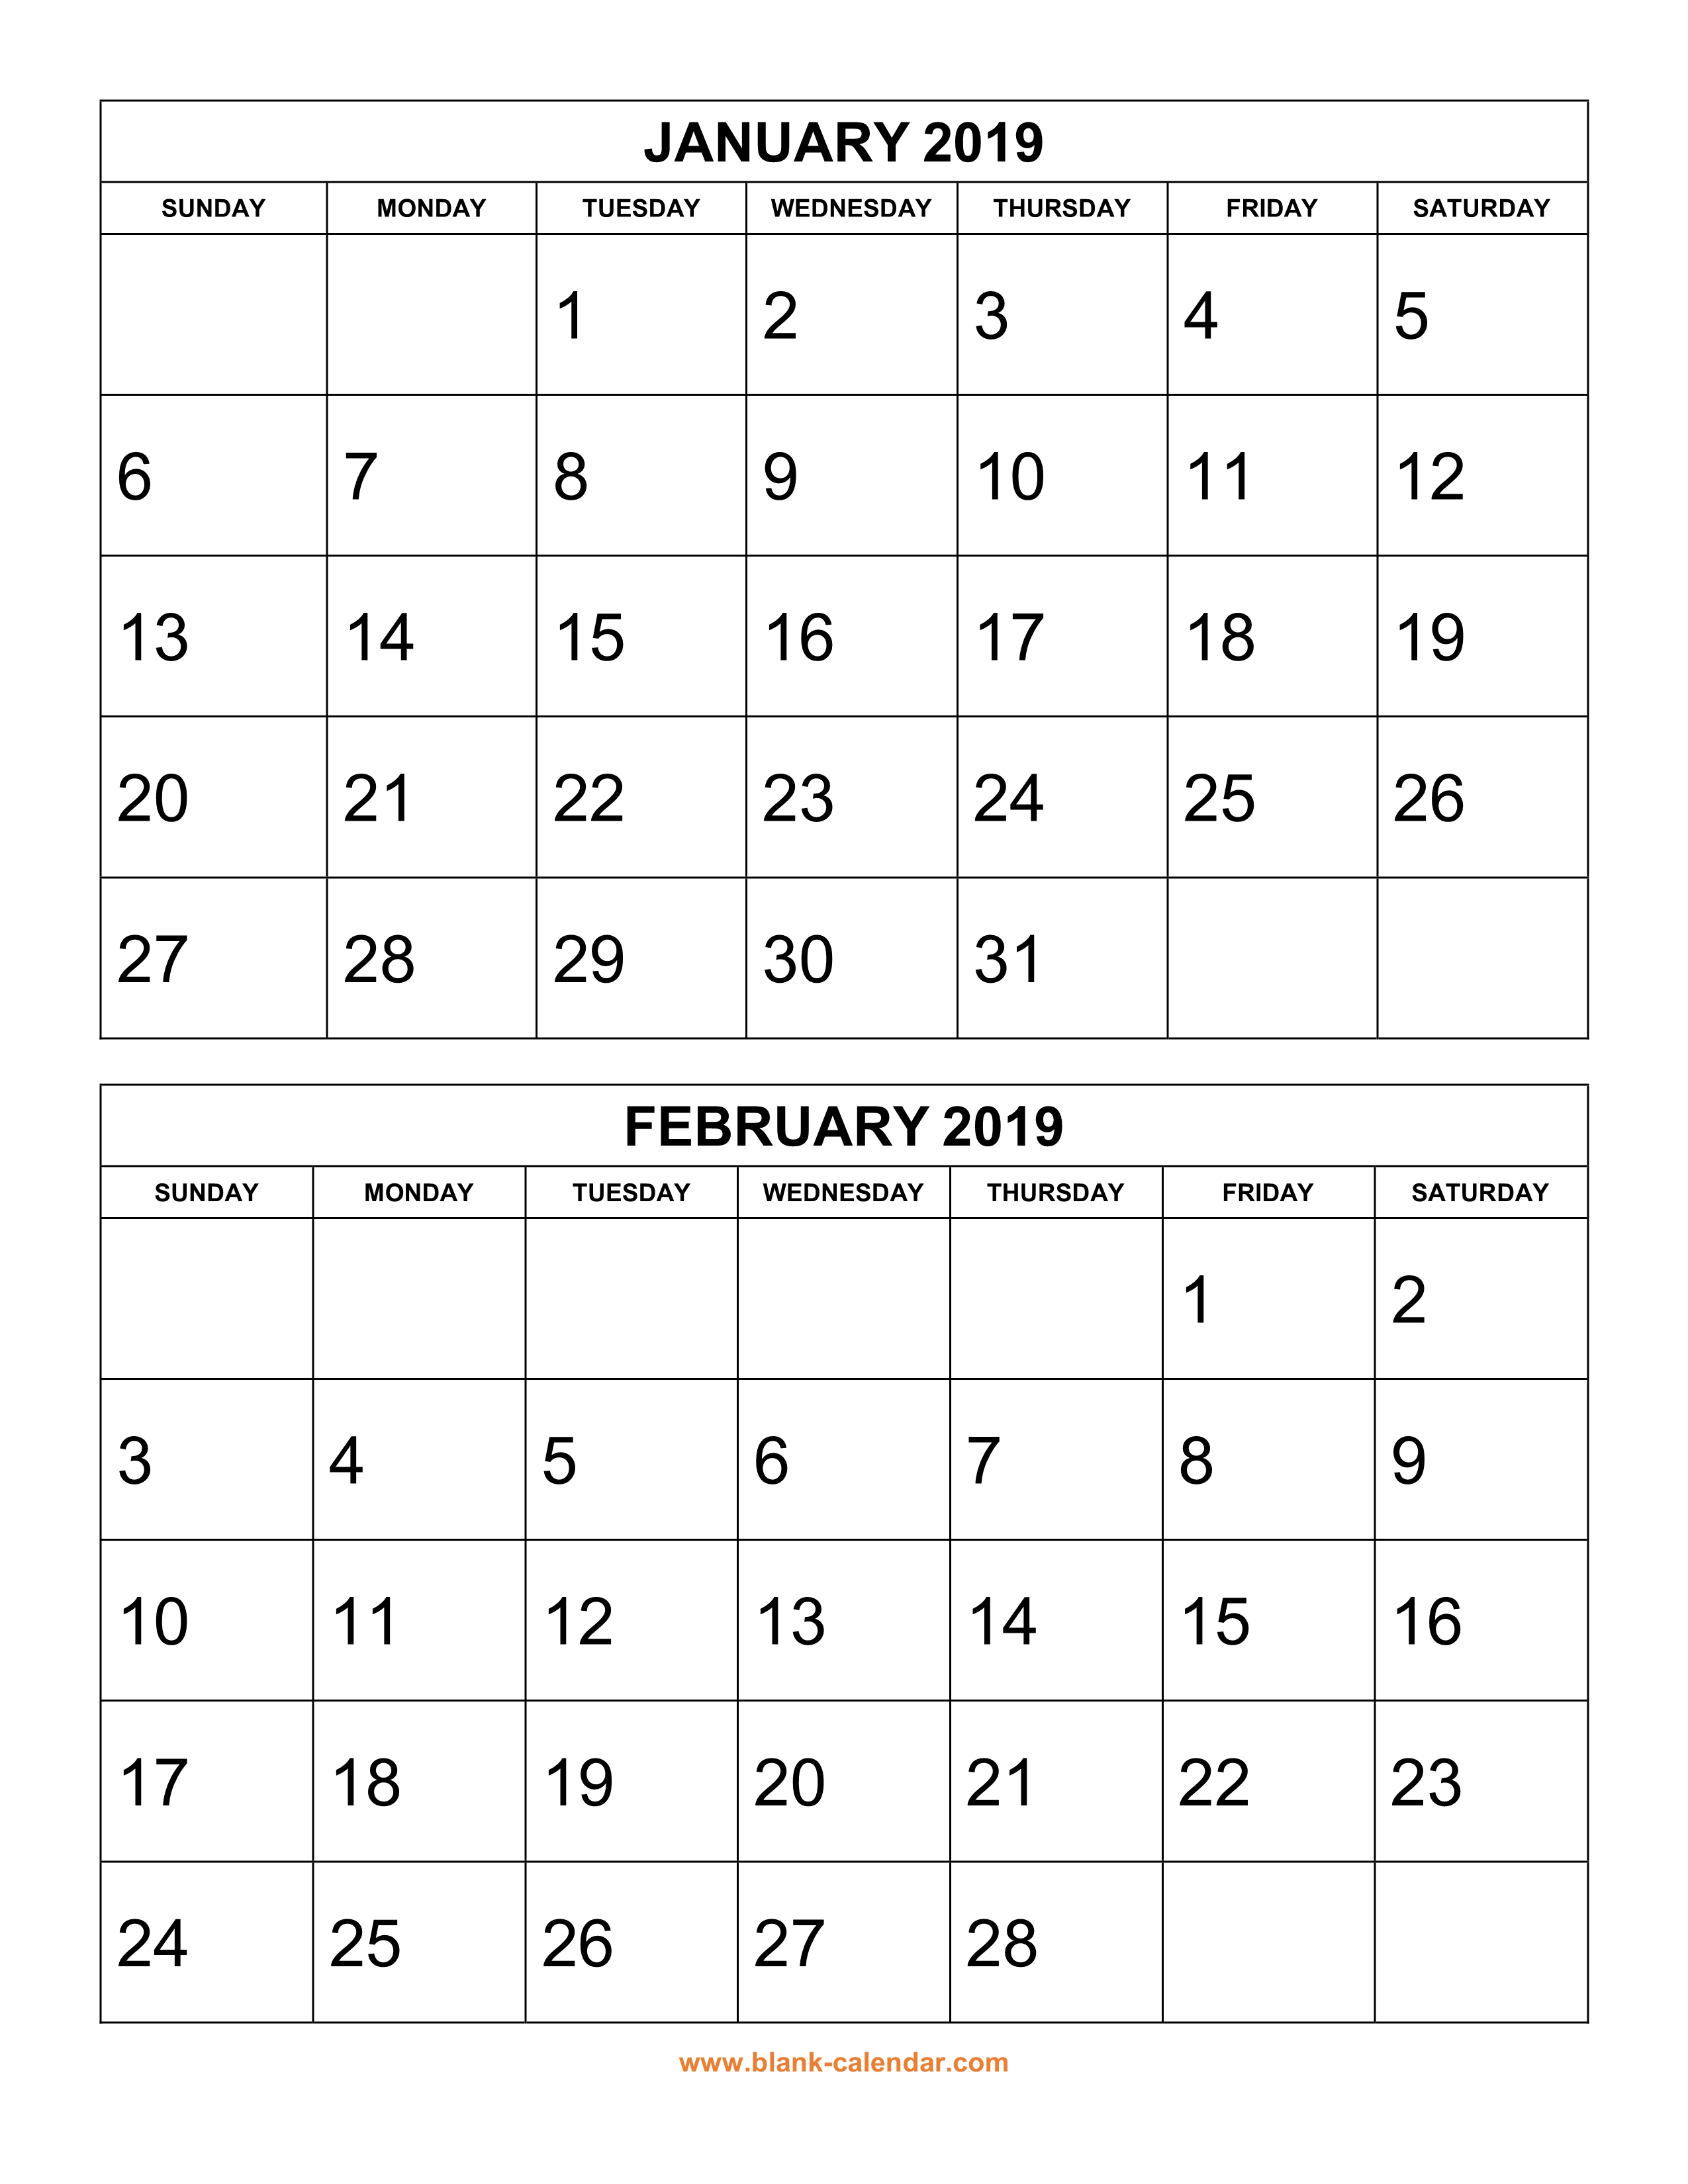 Free Download Printable Calendar 2019, 2 Months Per Page, 6 Pages with Edit Free Calendar Template 2019-2020